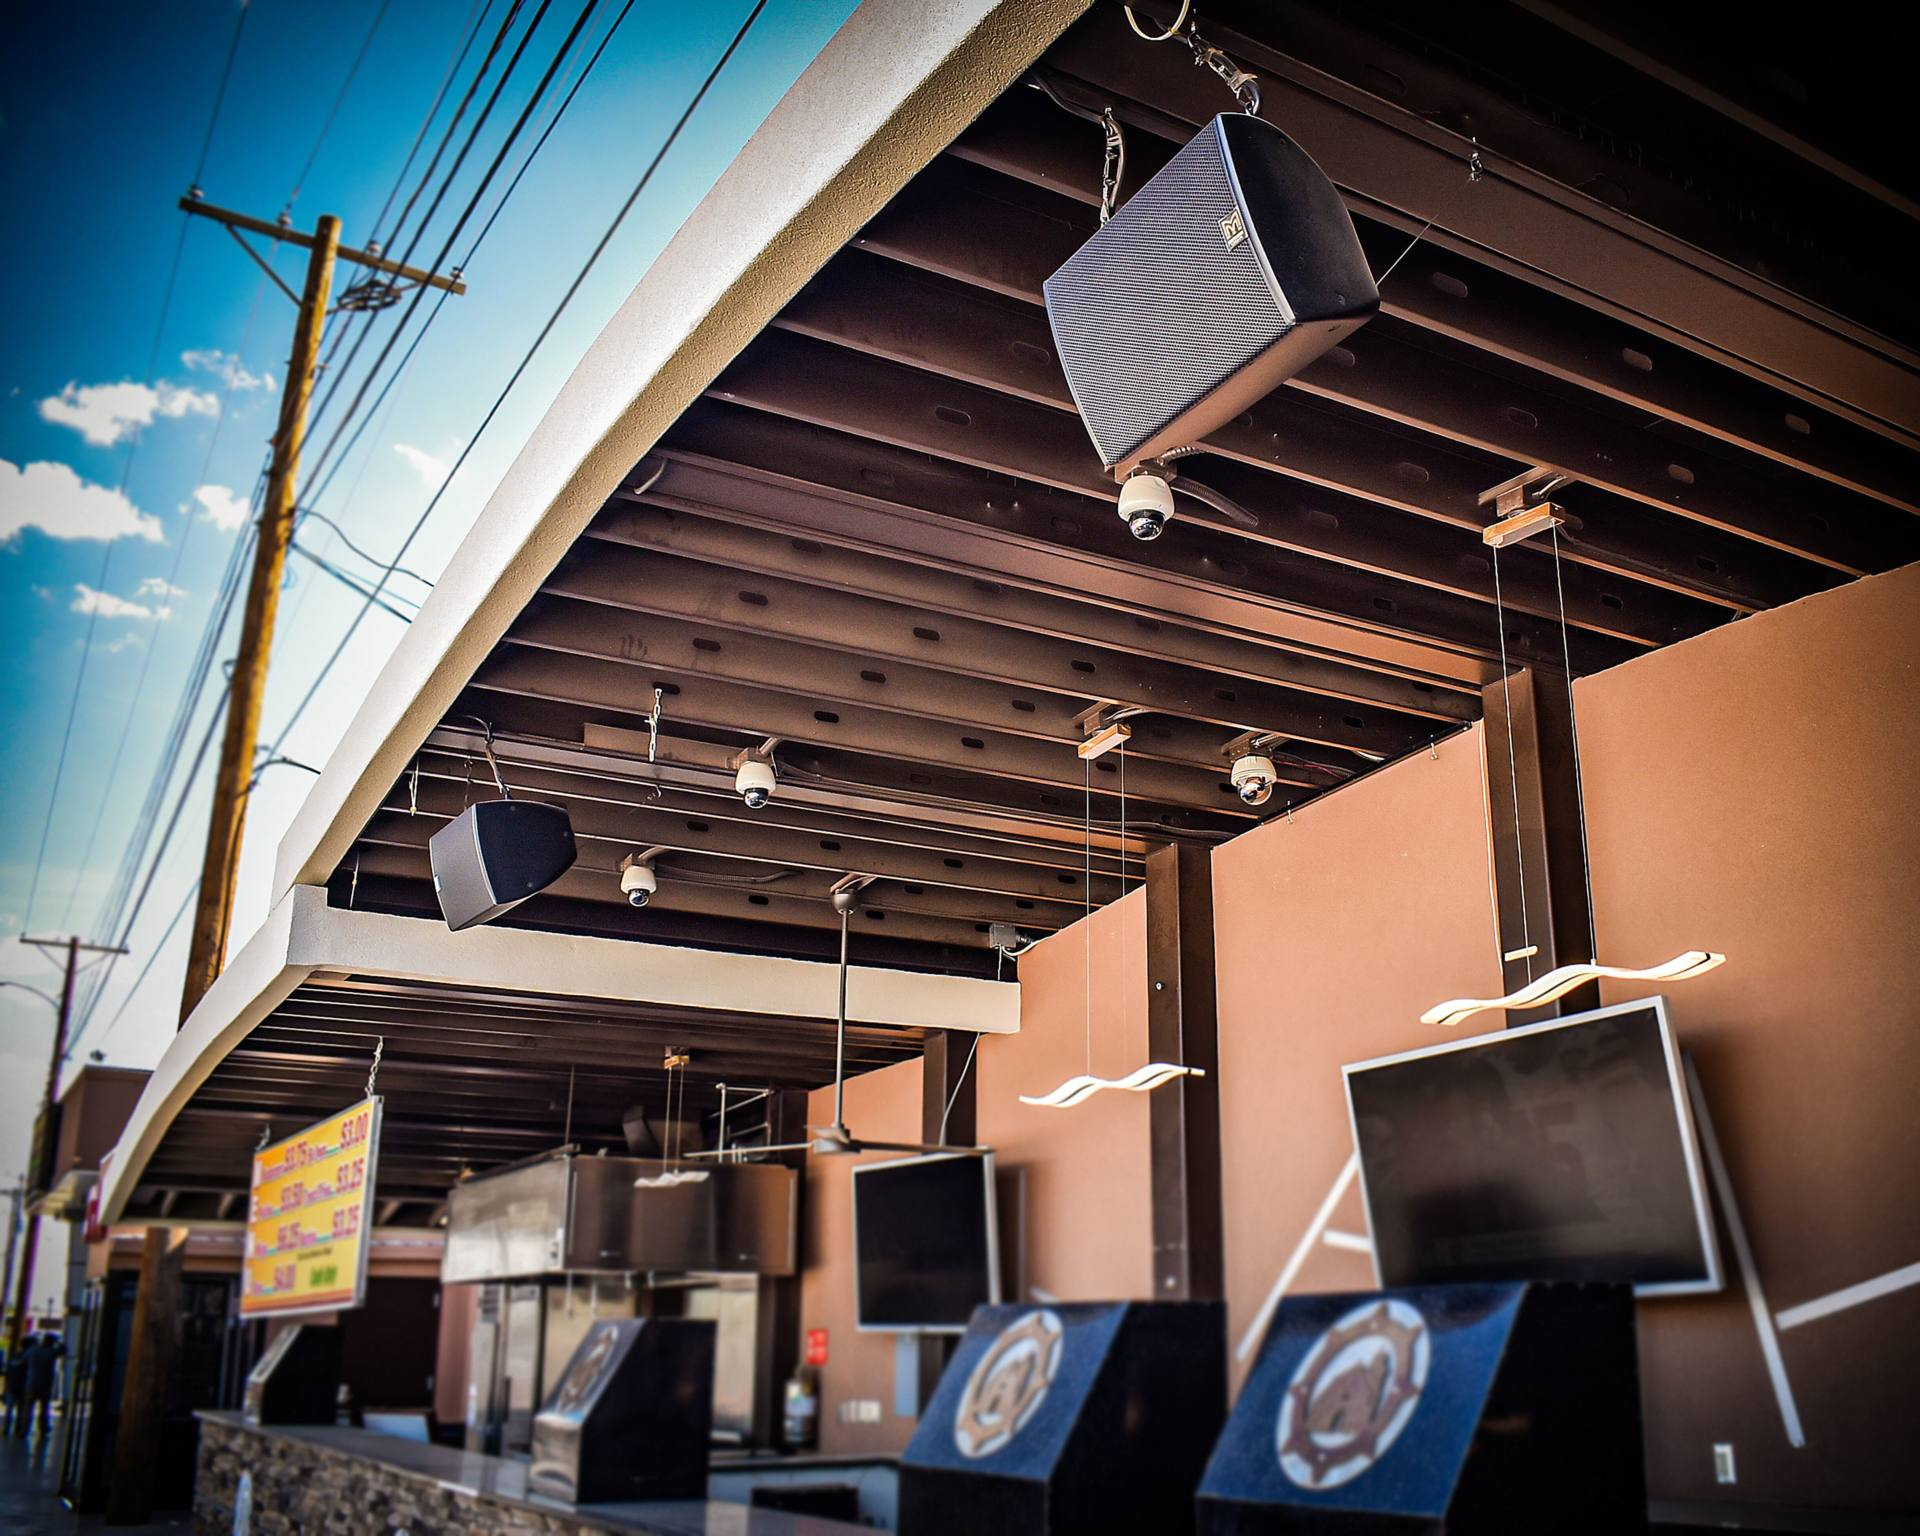 Wpc Consulting Speaking Rock Entertainment Center Upgrades To Martin Audio Rave